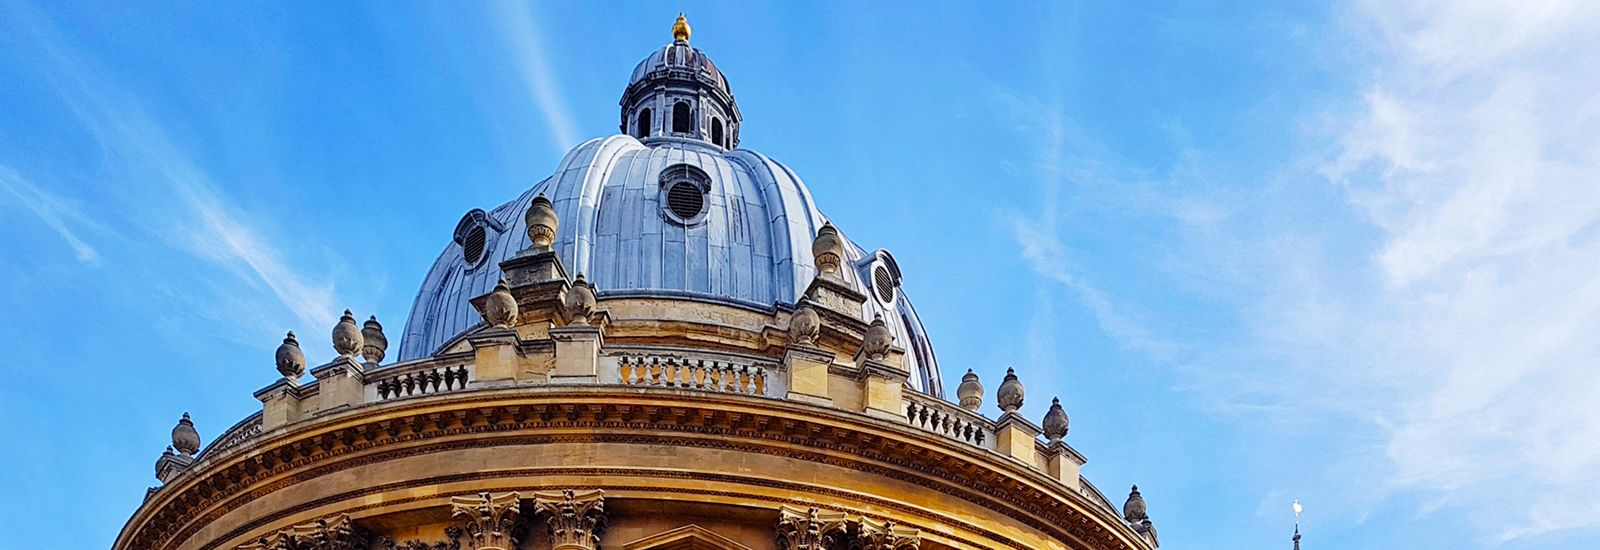 Top of the Radcliffe Camera's dome against a blue sky